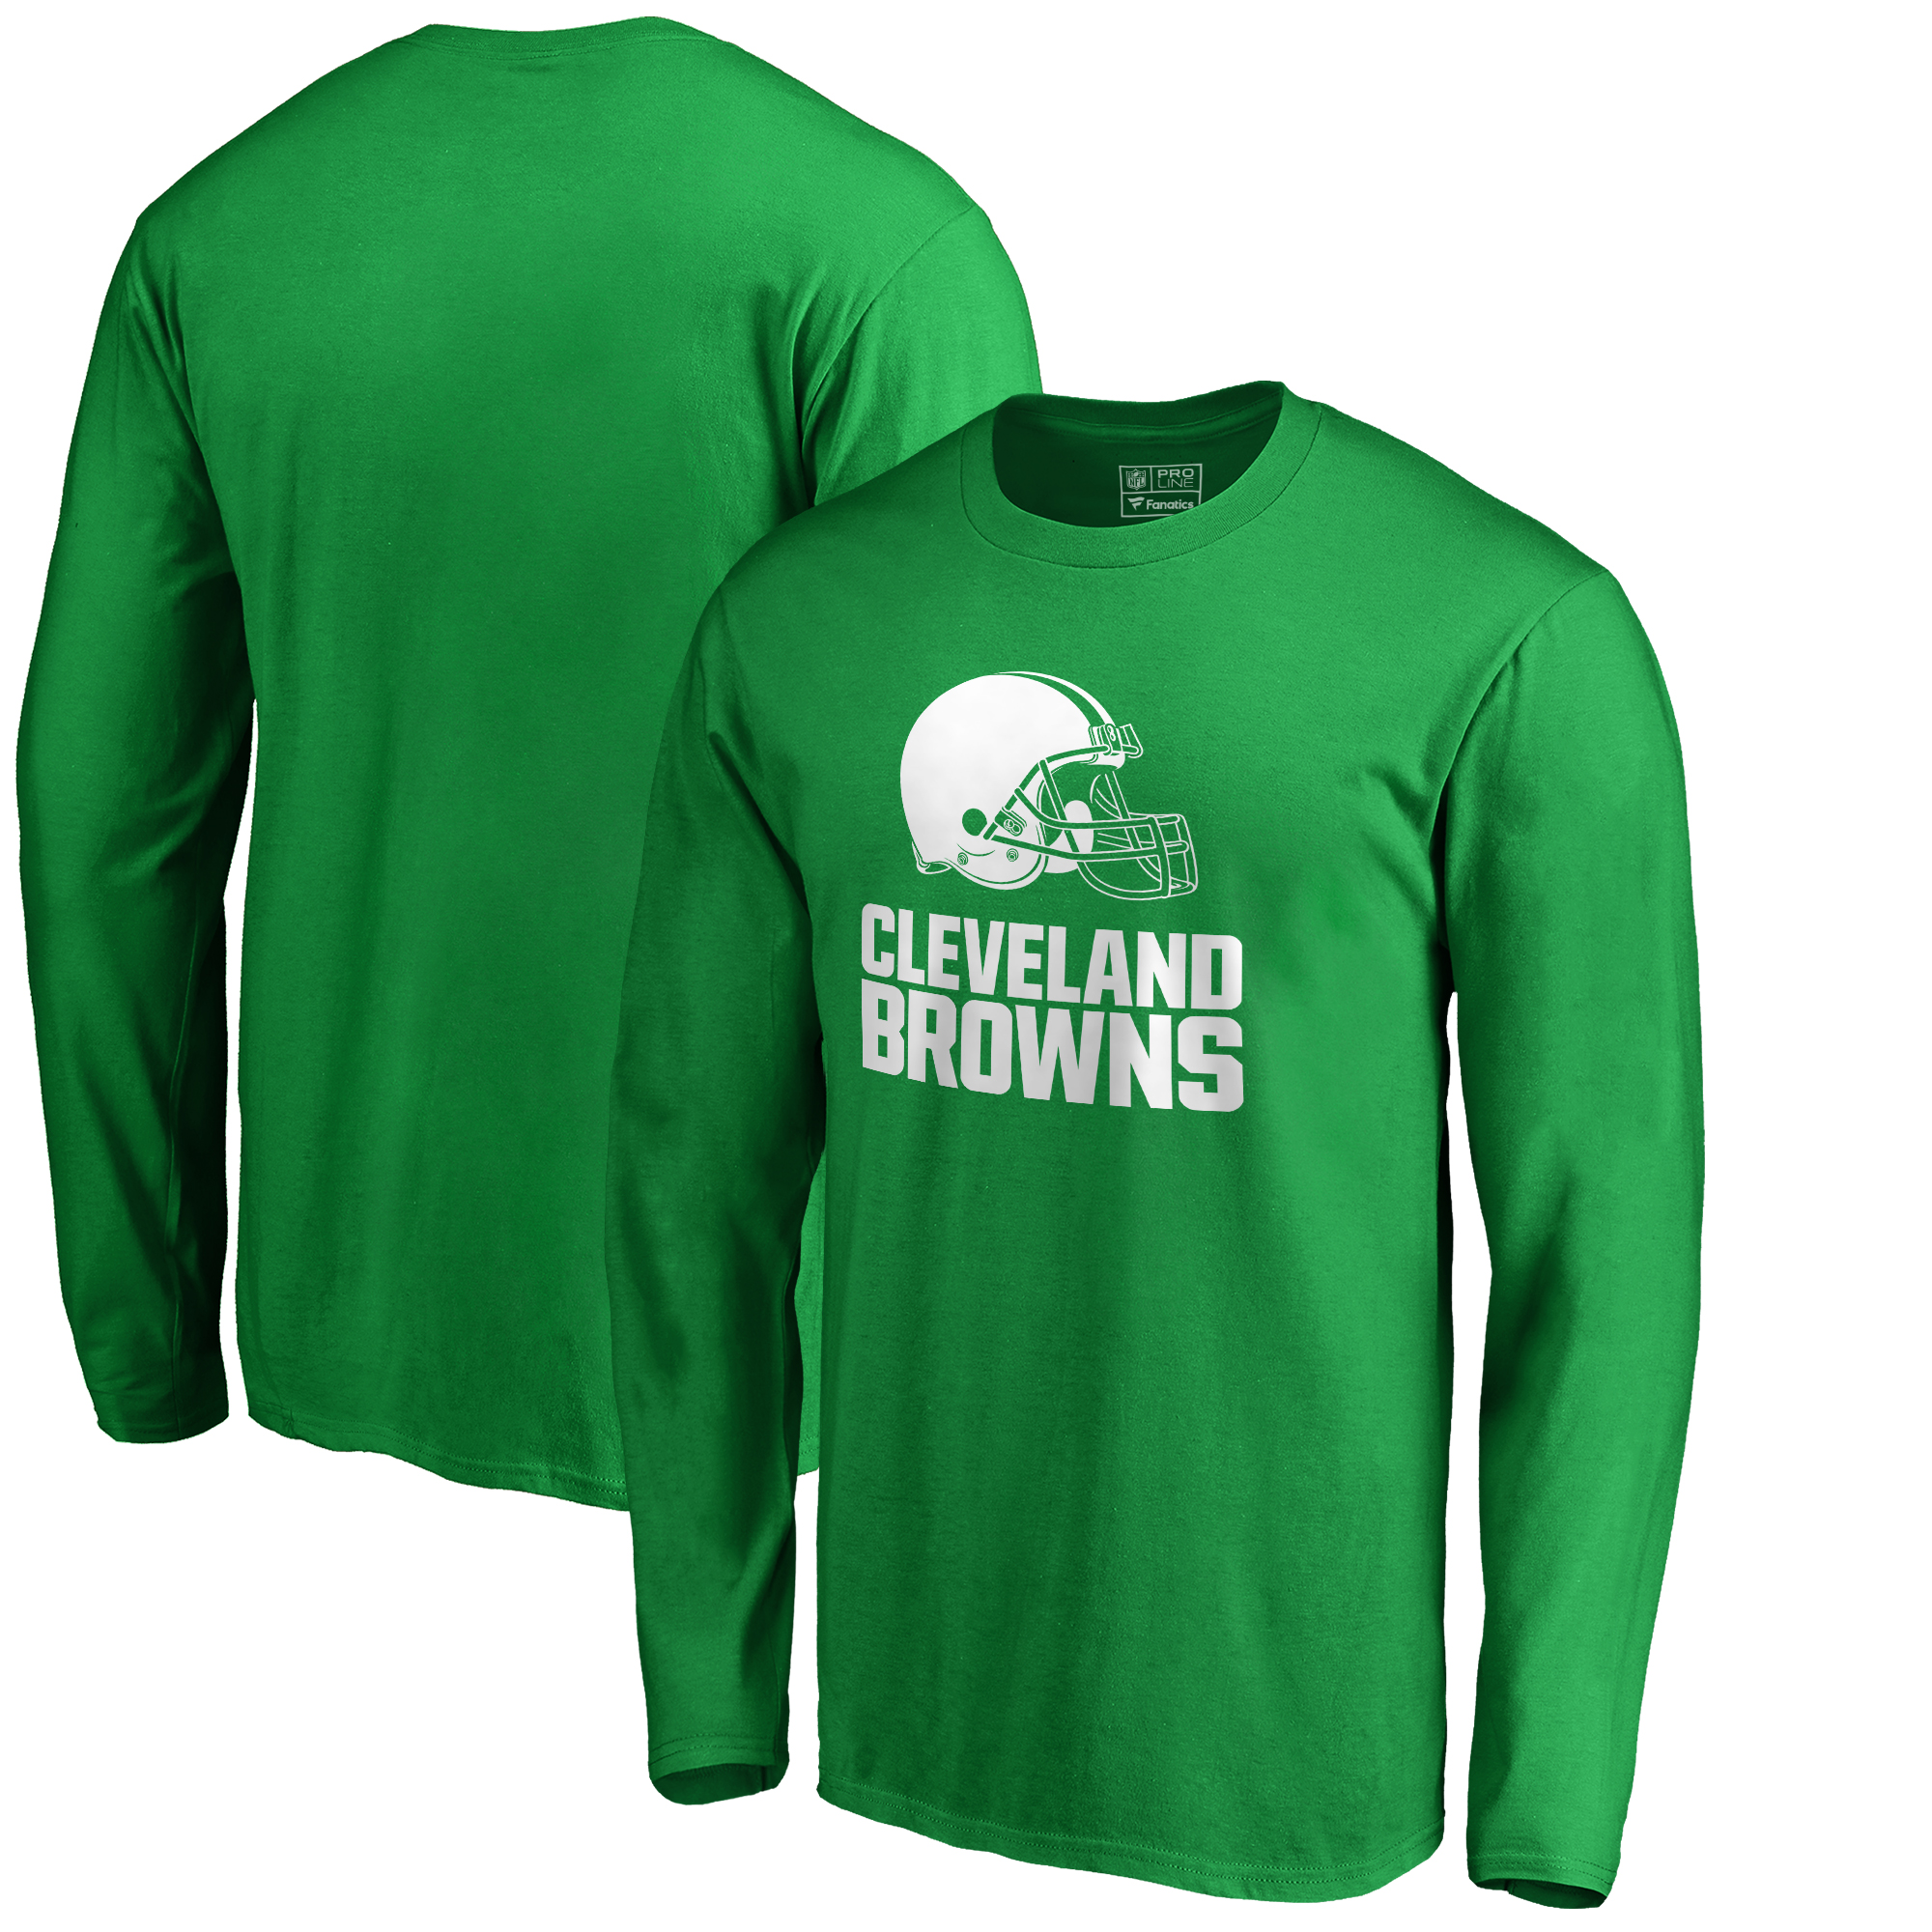 Cleveland Browns NFL Pro Line by Fanatics Branded St. Patrick's Day White Logo Long Sleeve T-Shirt - Kelly Green